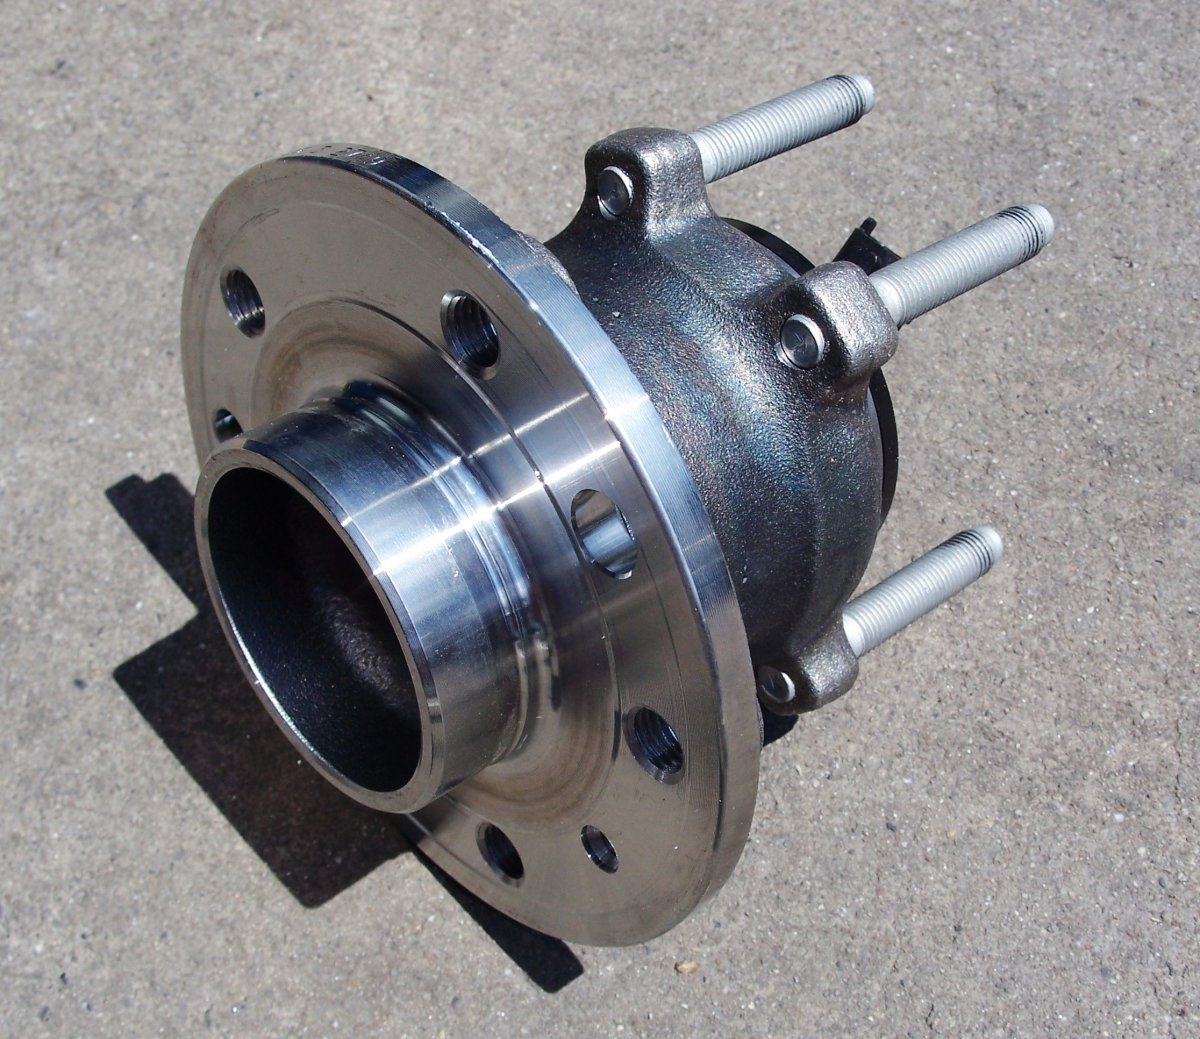 The wheel bearing is pressed into a hub.